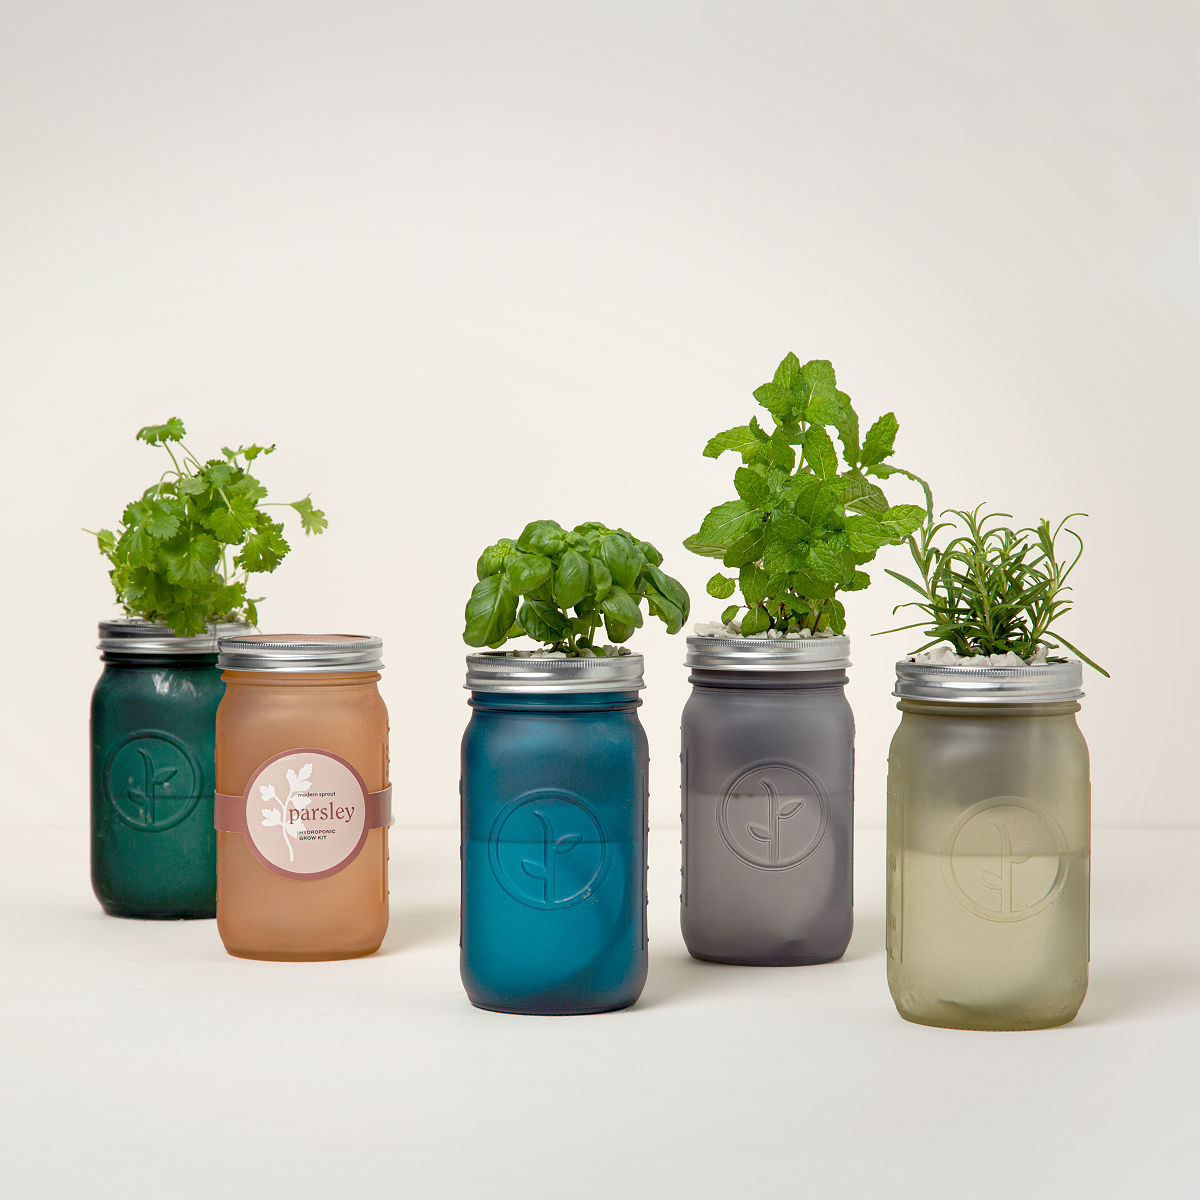 Unique Gardening Gifts & Accessories UncommonGoods